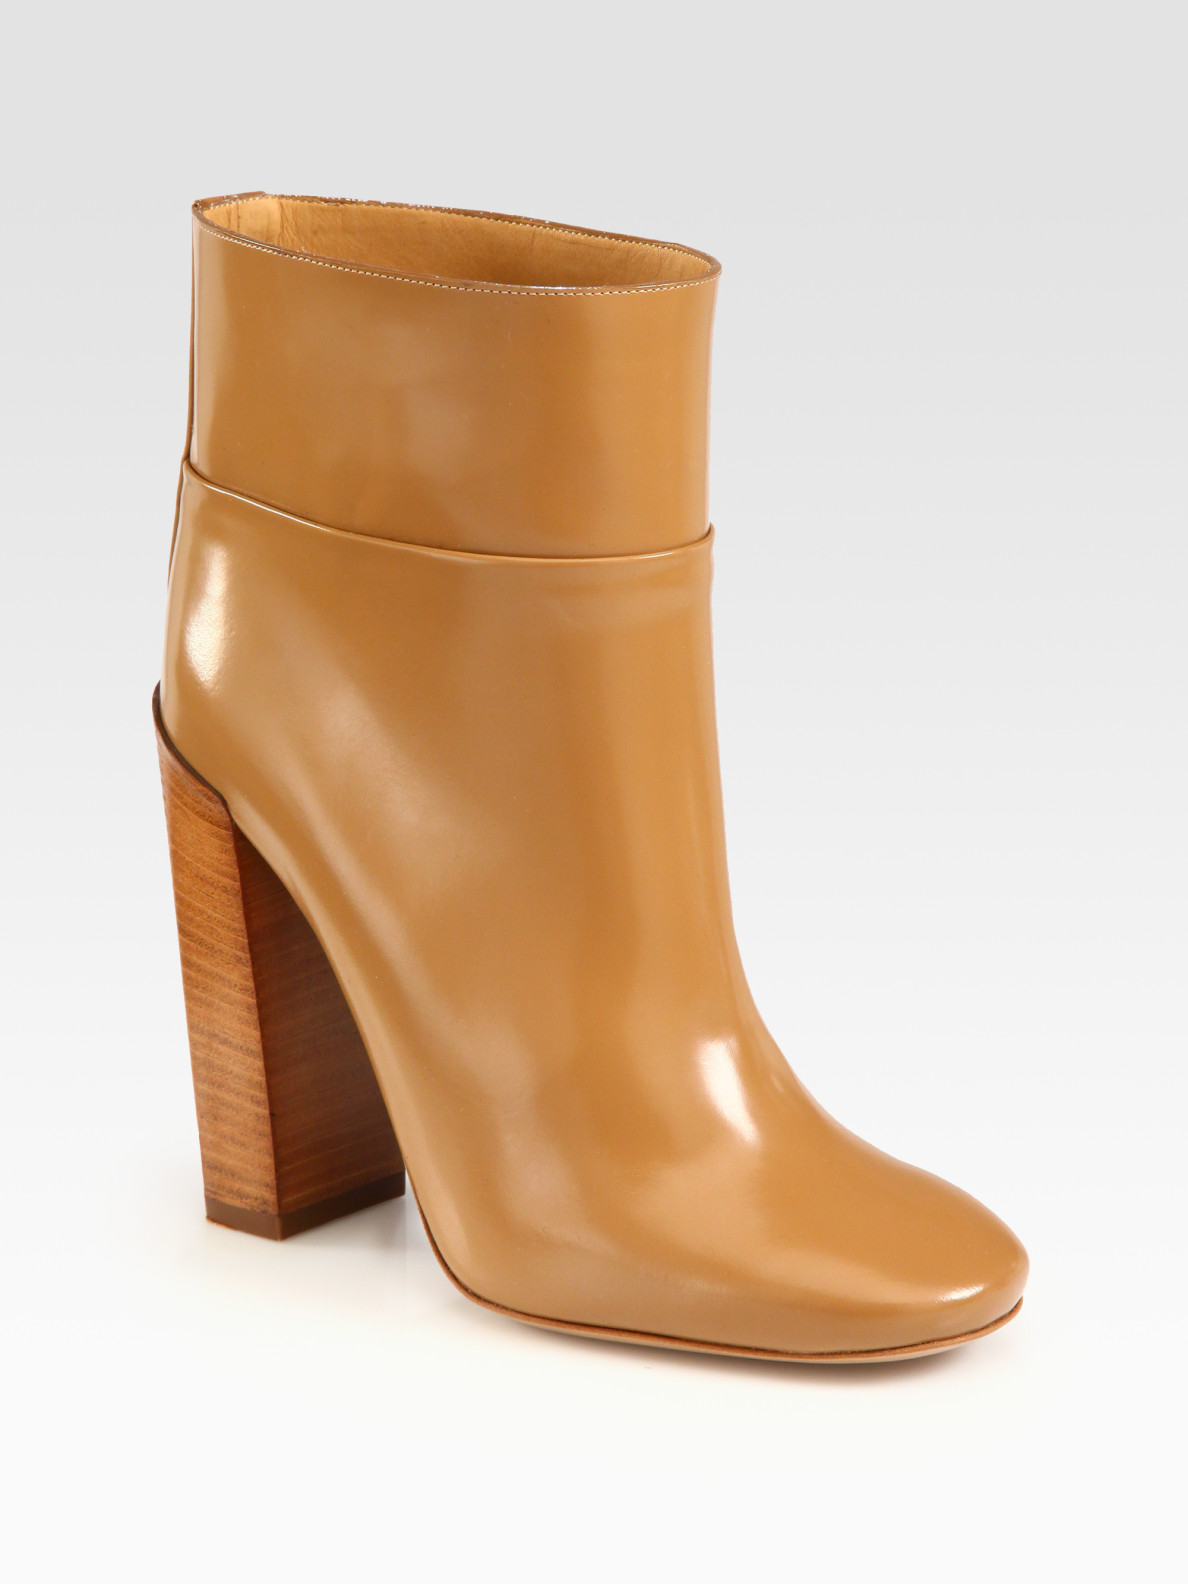 ceebb7e646b1 Lyst - Chloé Leather Ankle Boots in Natural